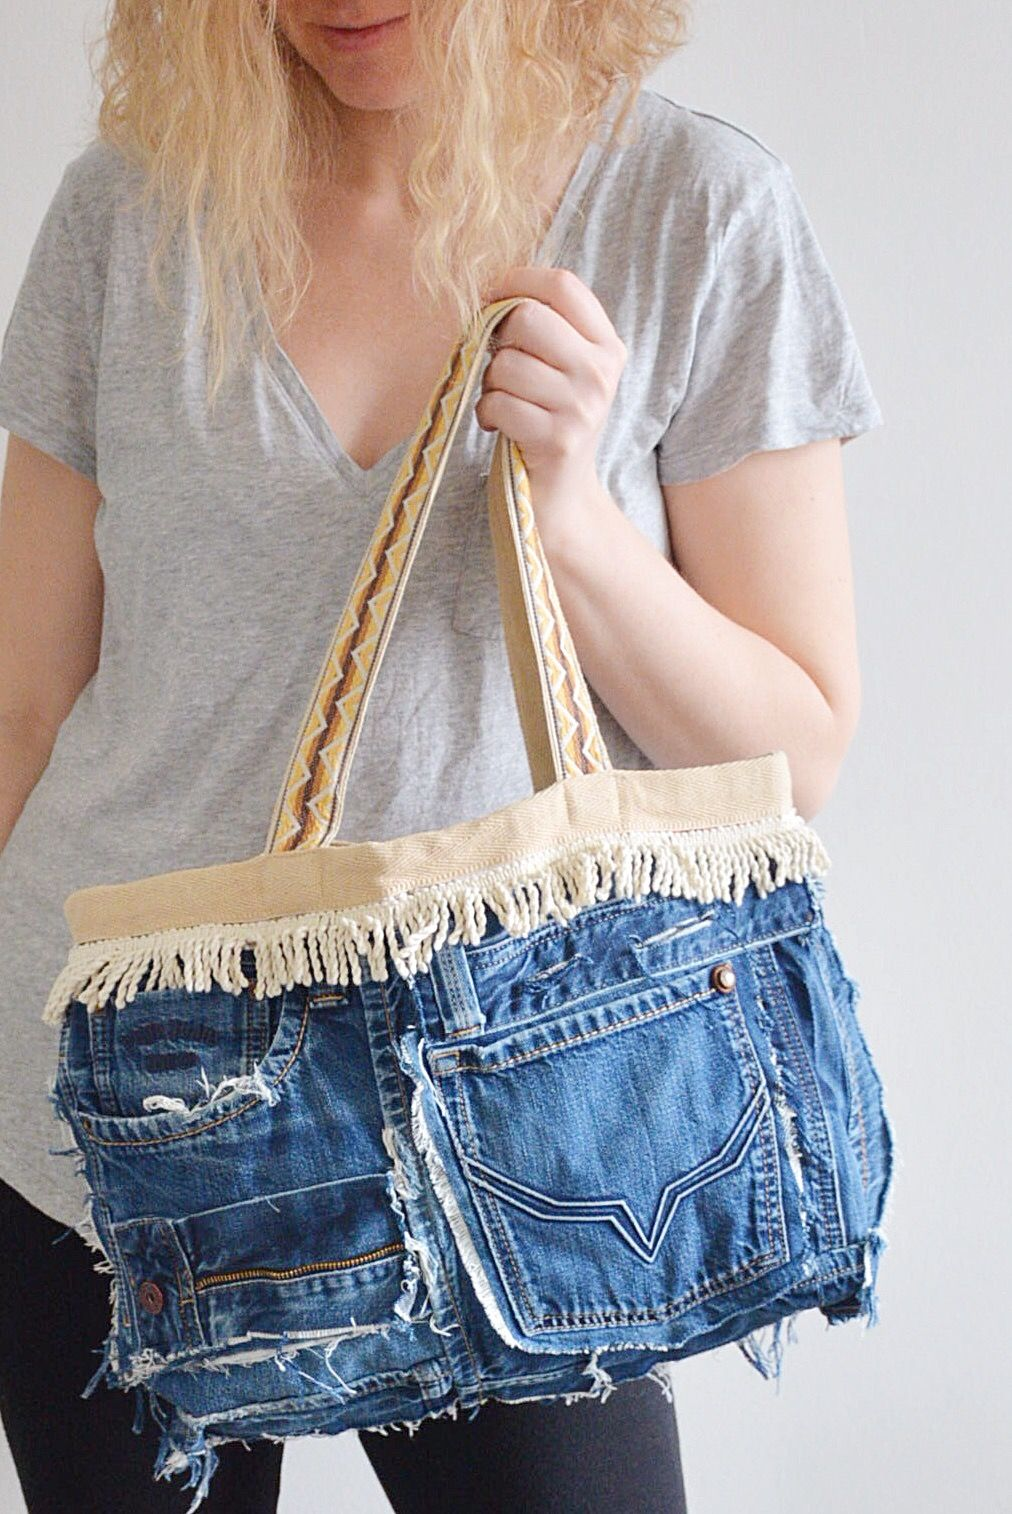 Pin by Riet on Spijker tassen en etc. Kussen | Denim tote